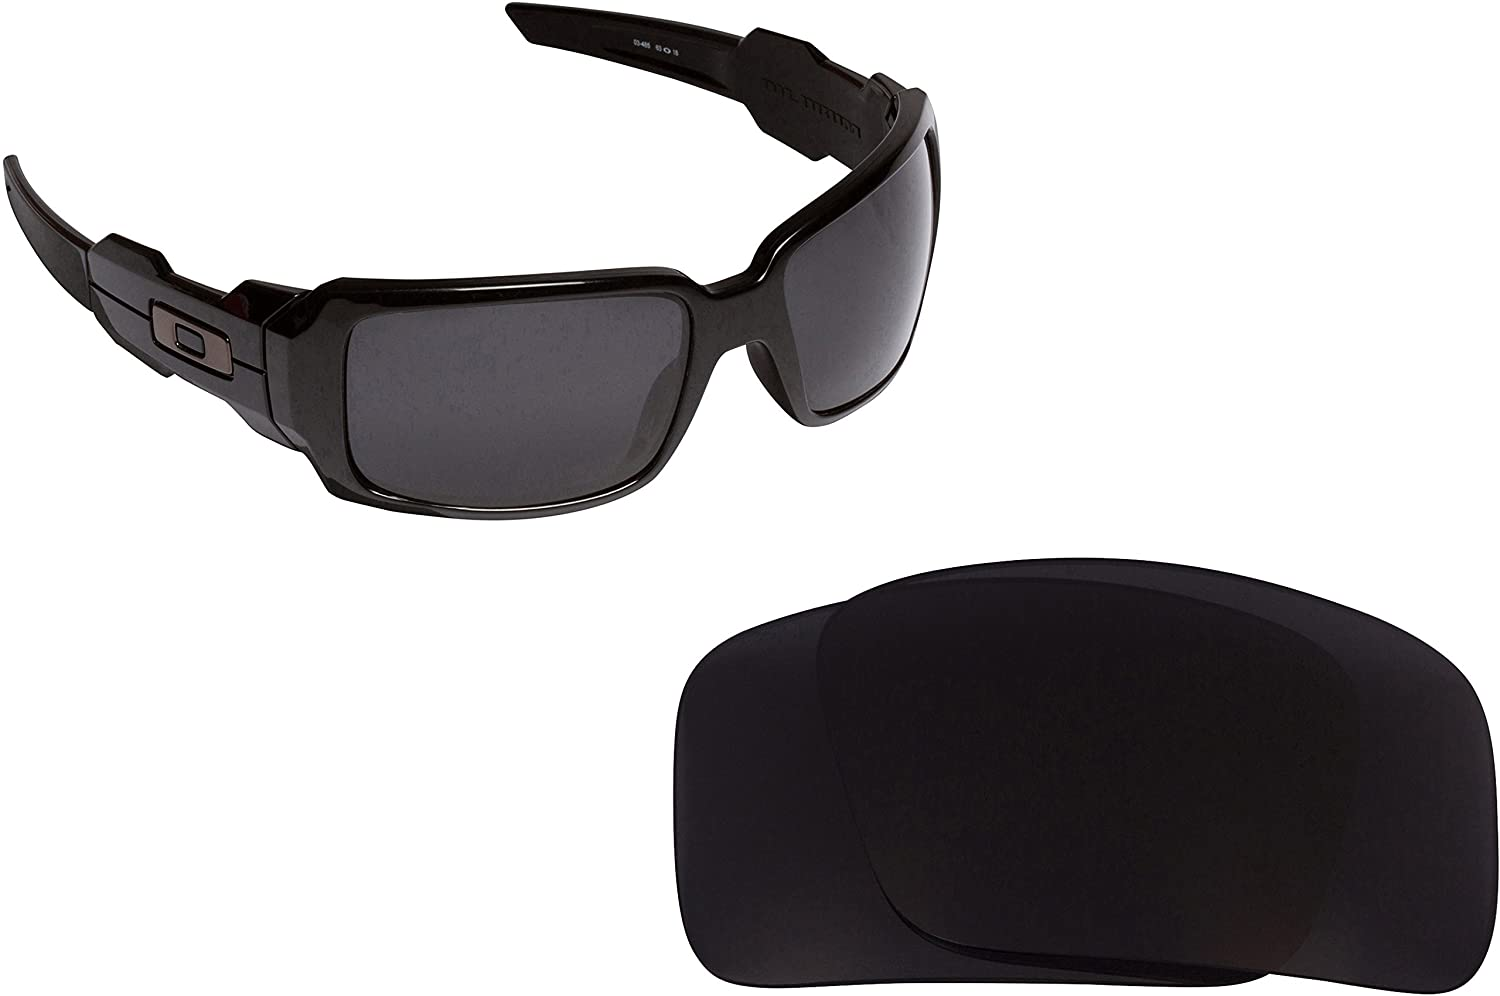 Oil Drum Replacement Lenses Polarized Black by SEEK fits OAKLEY Sunglasses